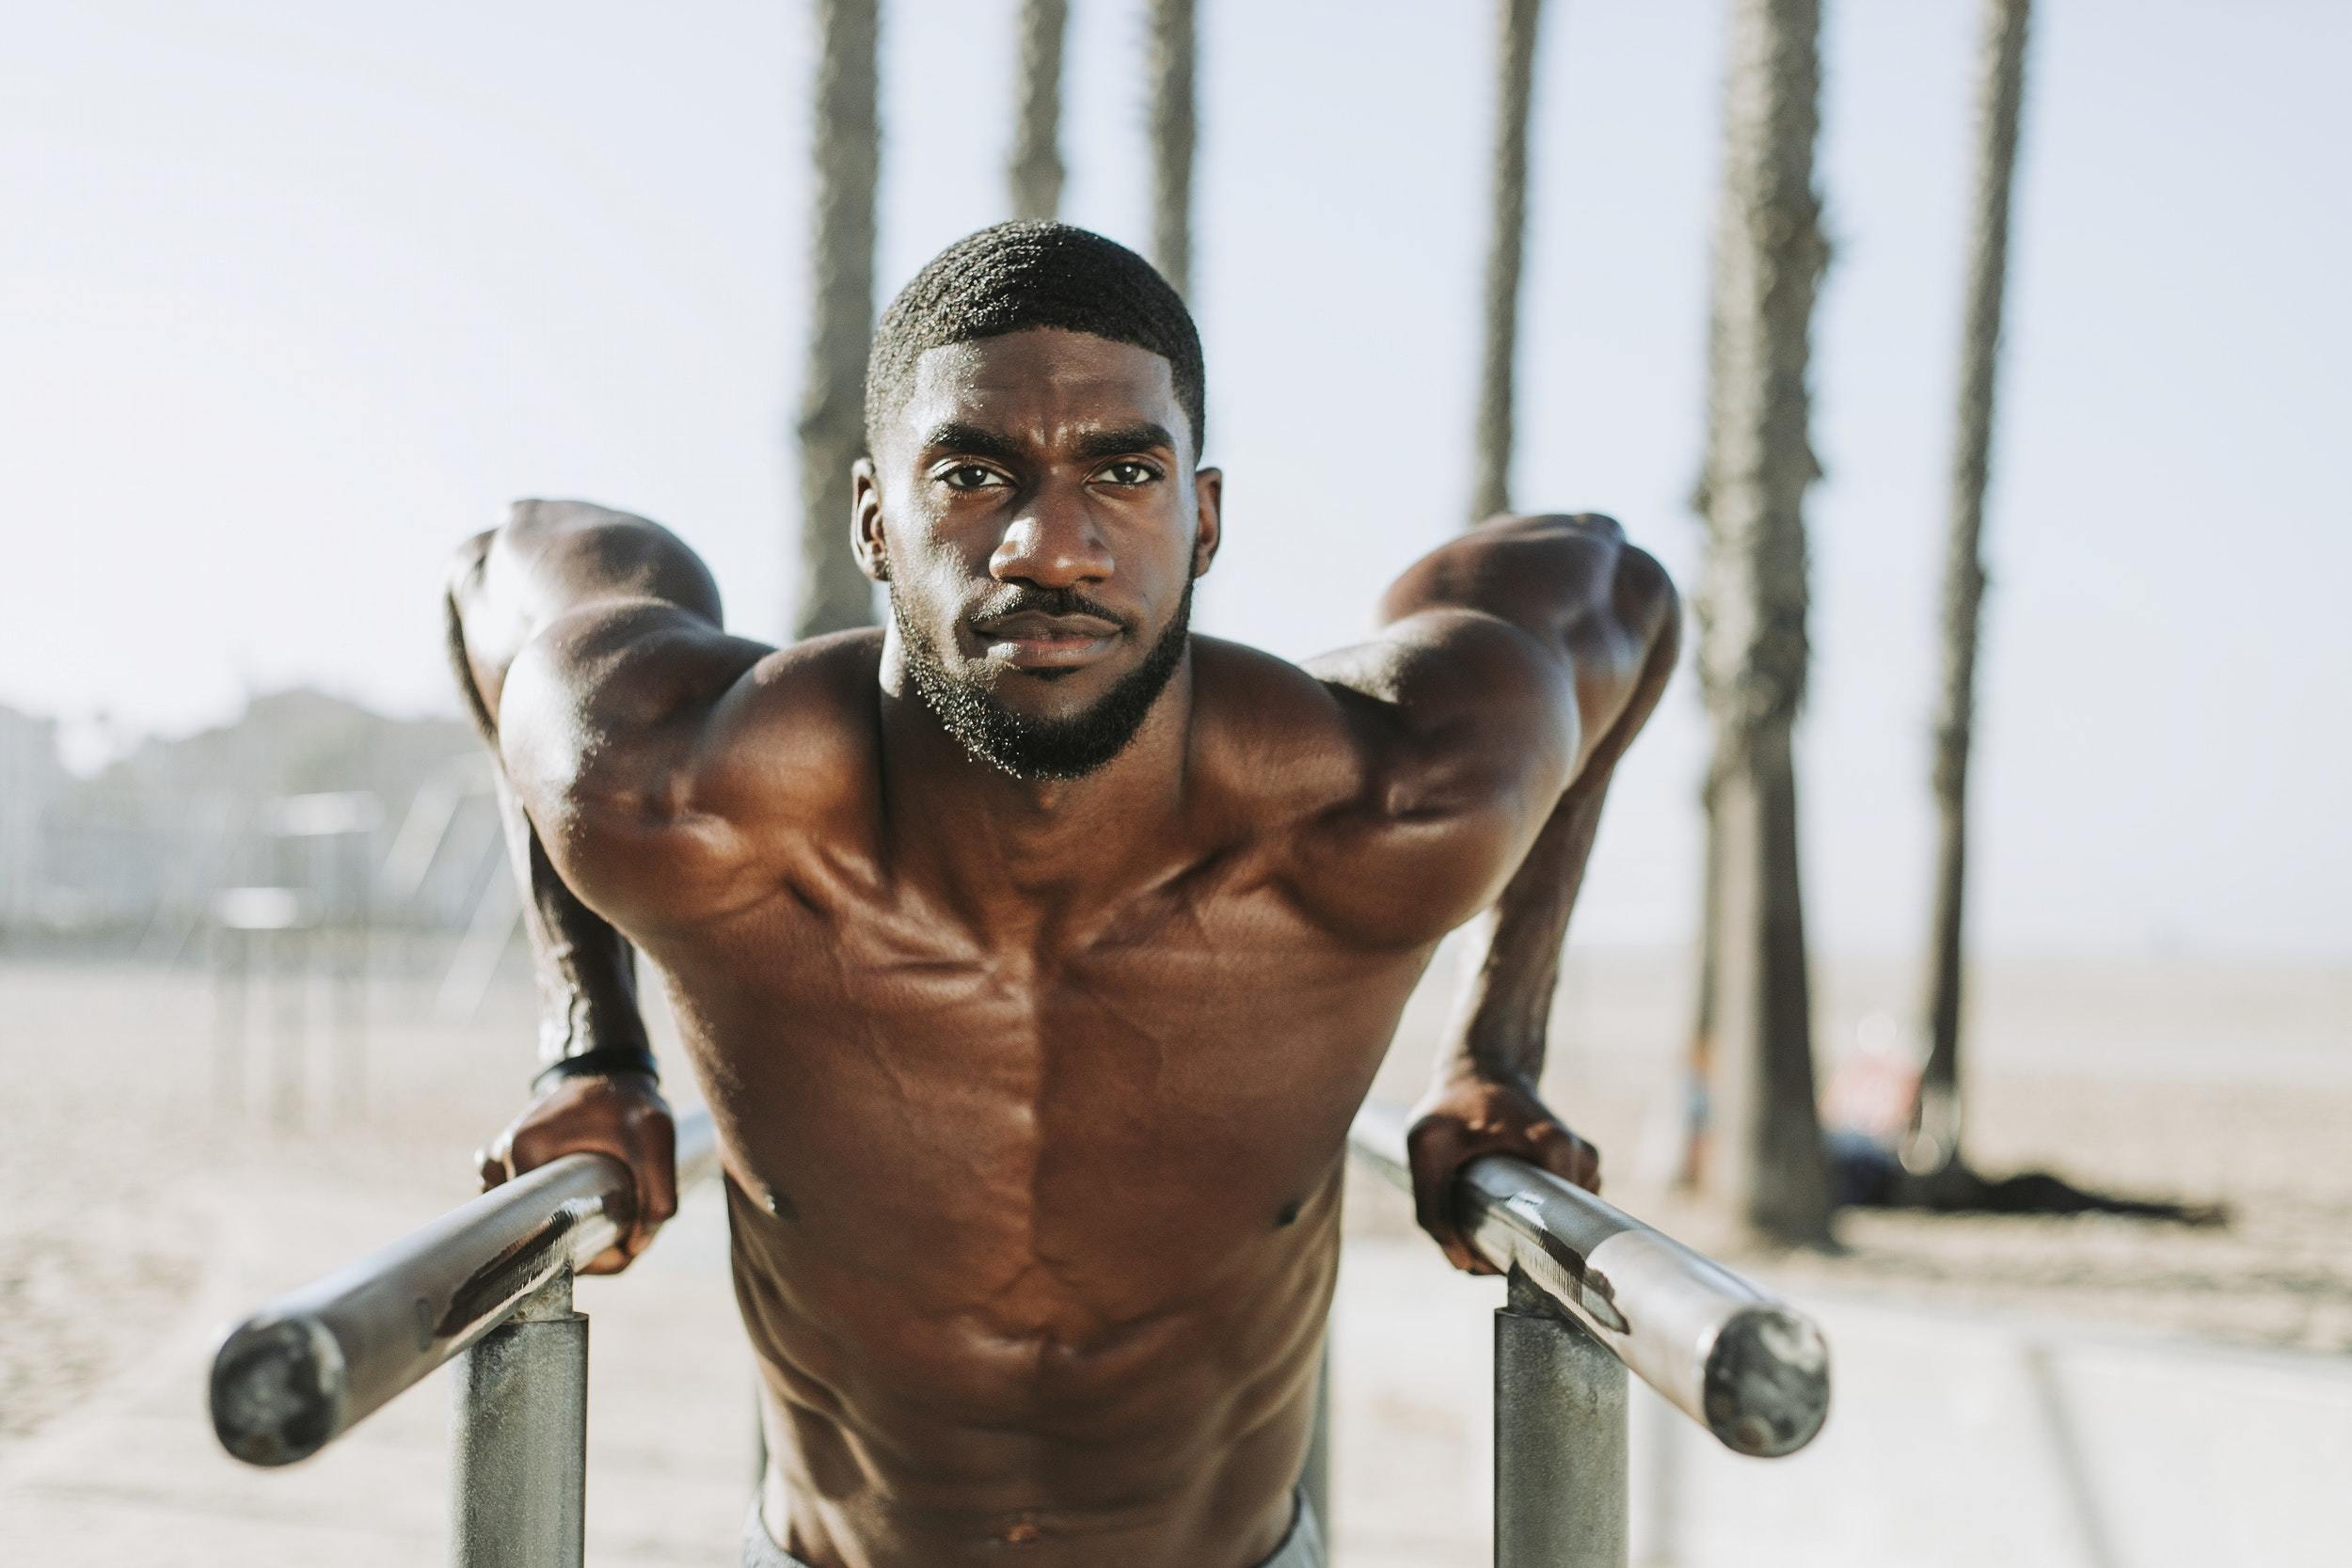 Man on the beach showing off his upper body muscles while doing dips